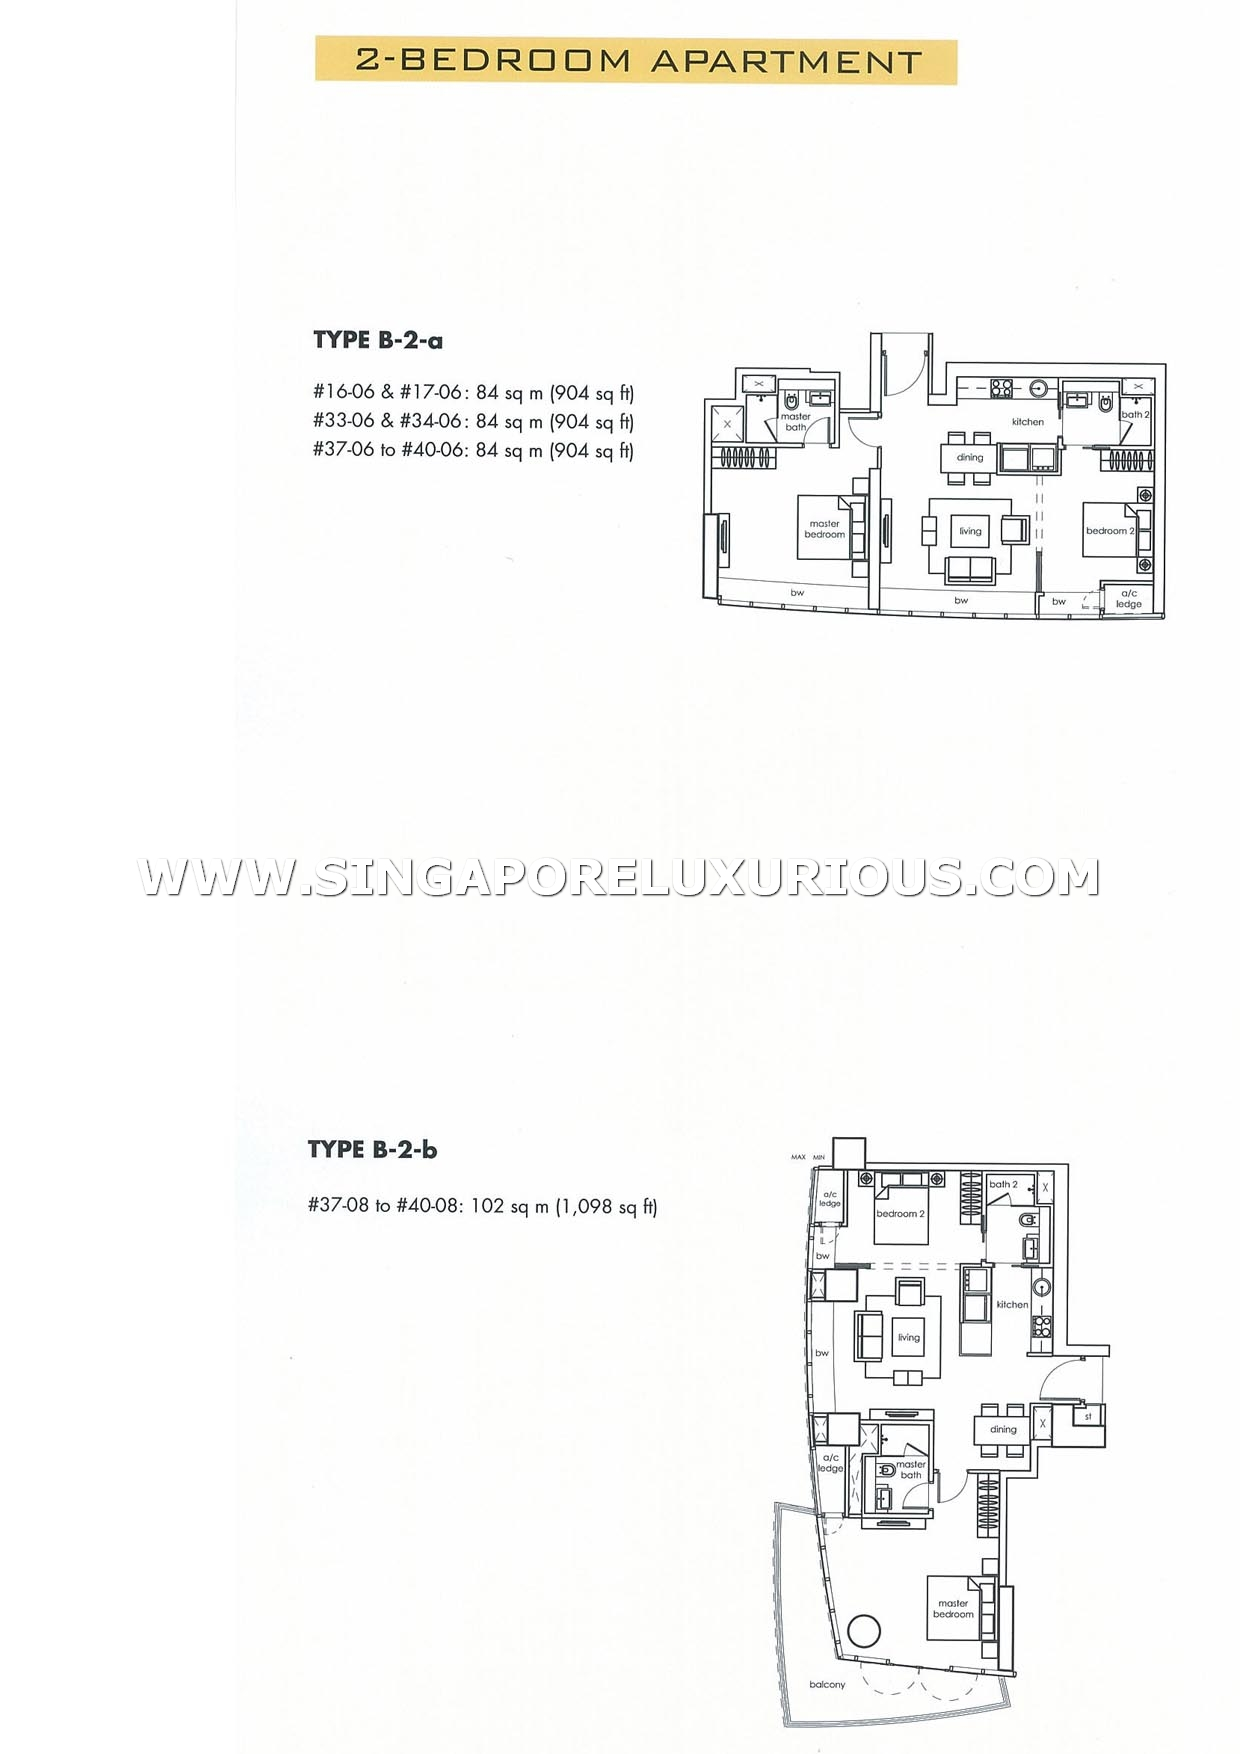 One Shenton Site Floor Plan Singapore Luxurious Property